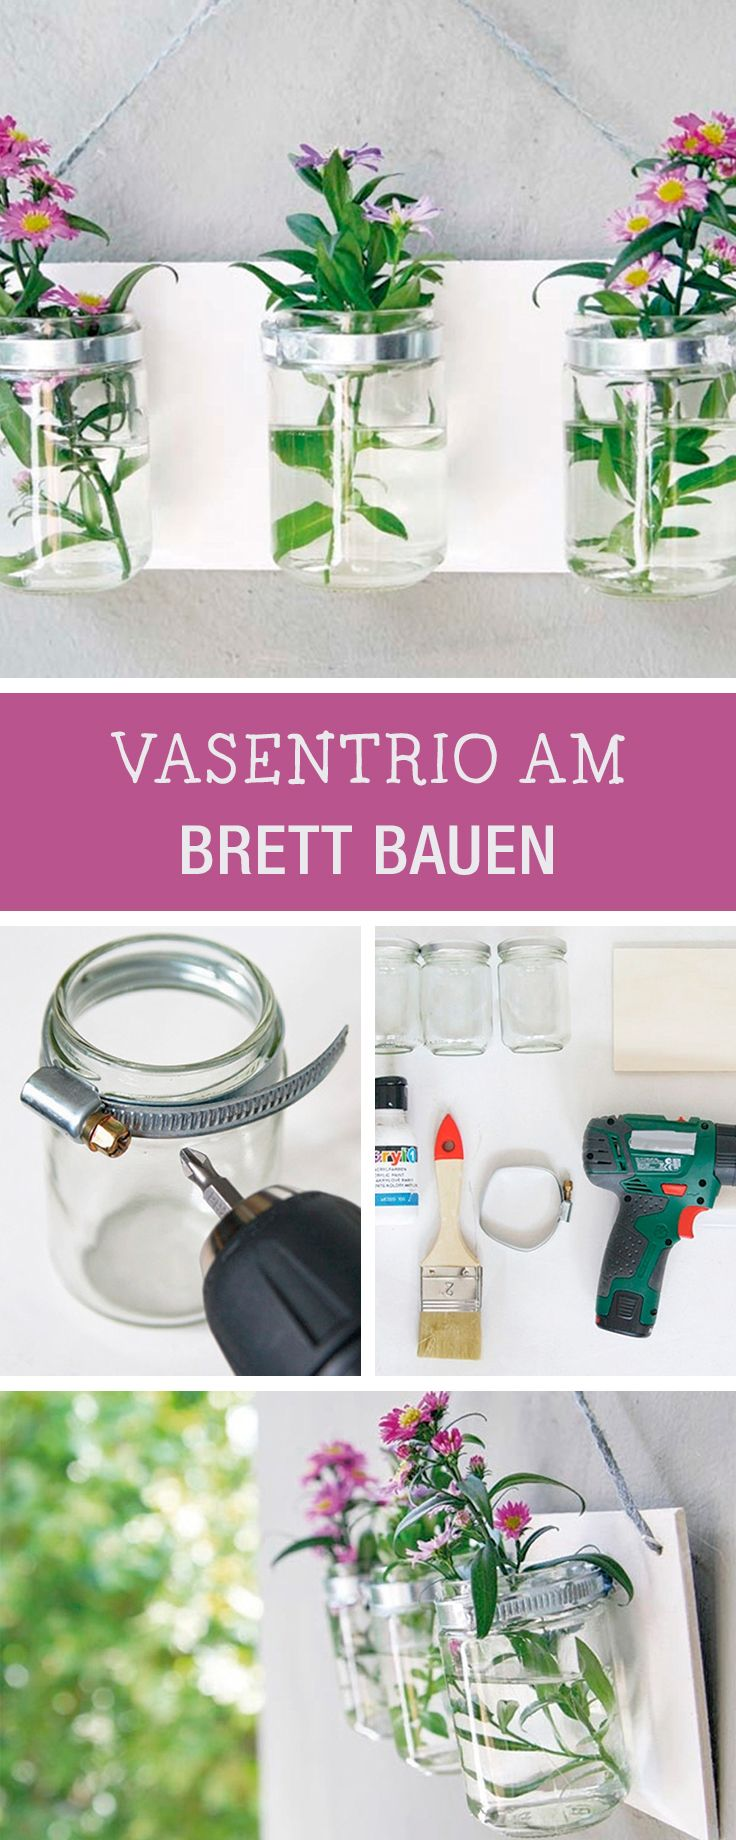 DIY-Inspiration für Wohndeko: Hängende Vasen am Brett bauen / crafting tutorial: upcycling idea for mason jars as hanging flower vases via DaWanda.com